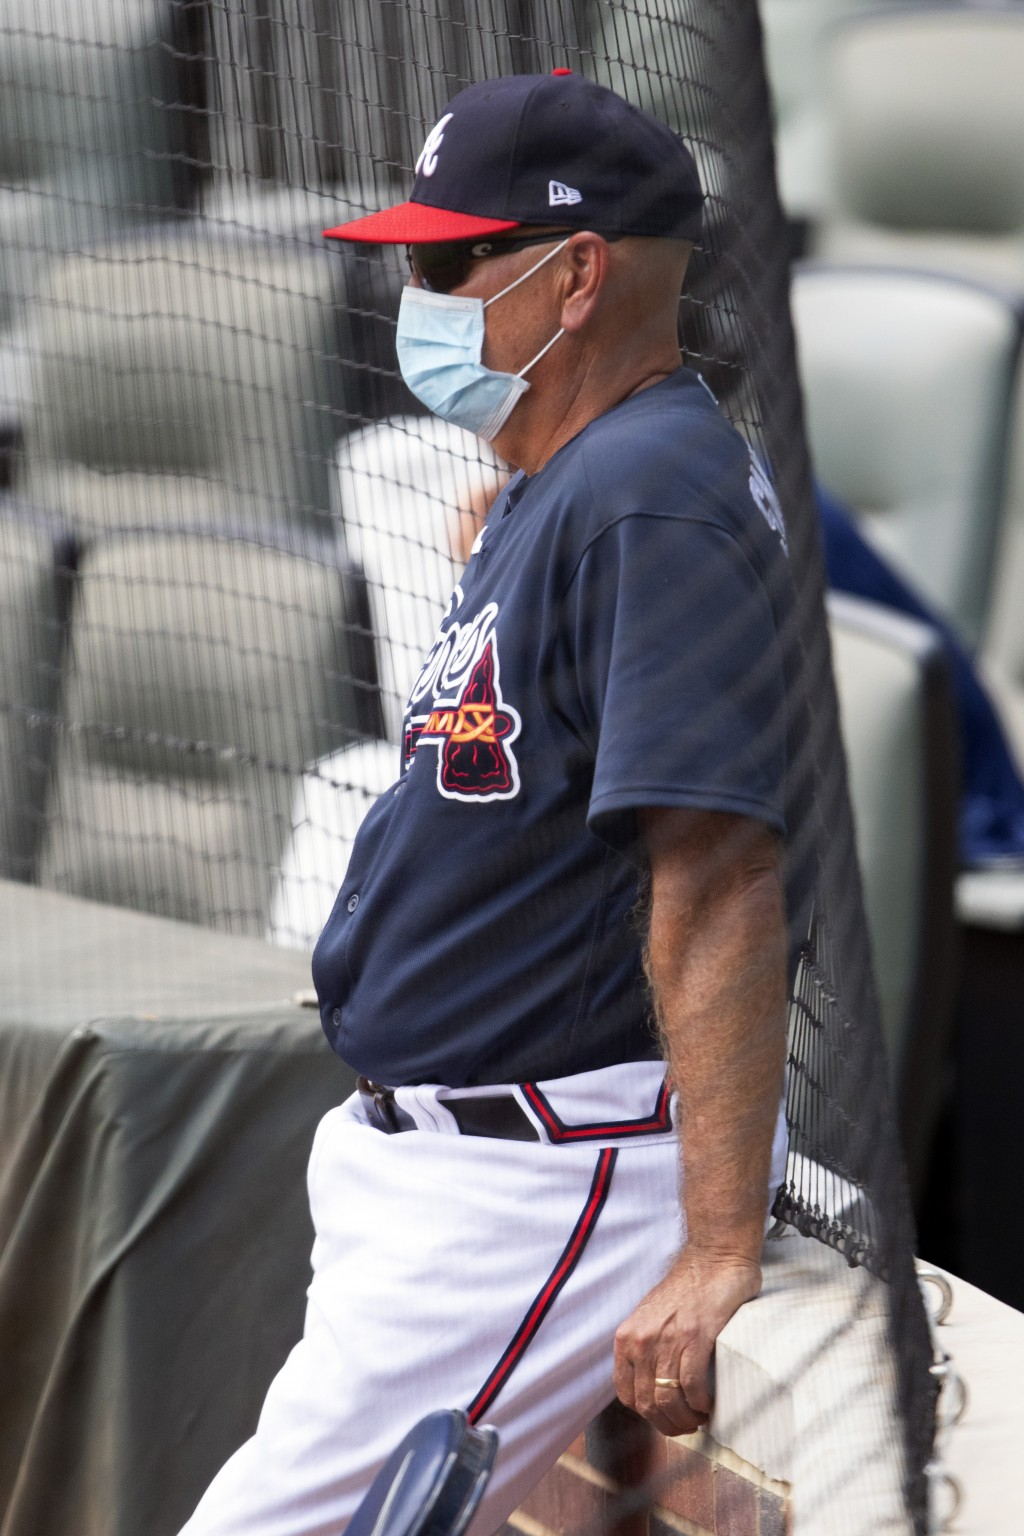 Atlanta Braves manager Brian Snitker watches during an intrasquad baseball game Thursday, July 16, 2020, in Atlanta. (AP Photo/John Bazemore)